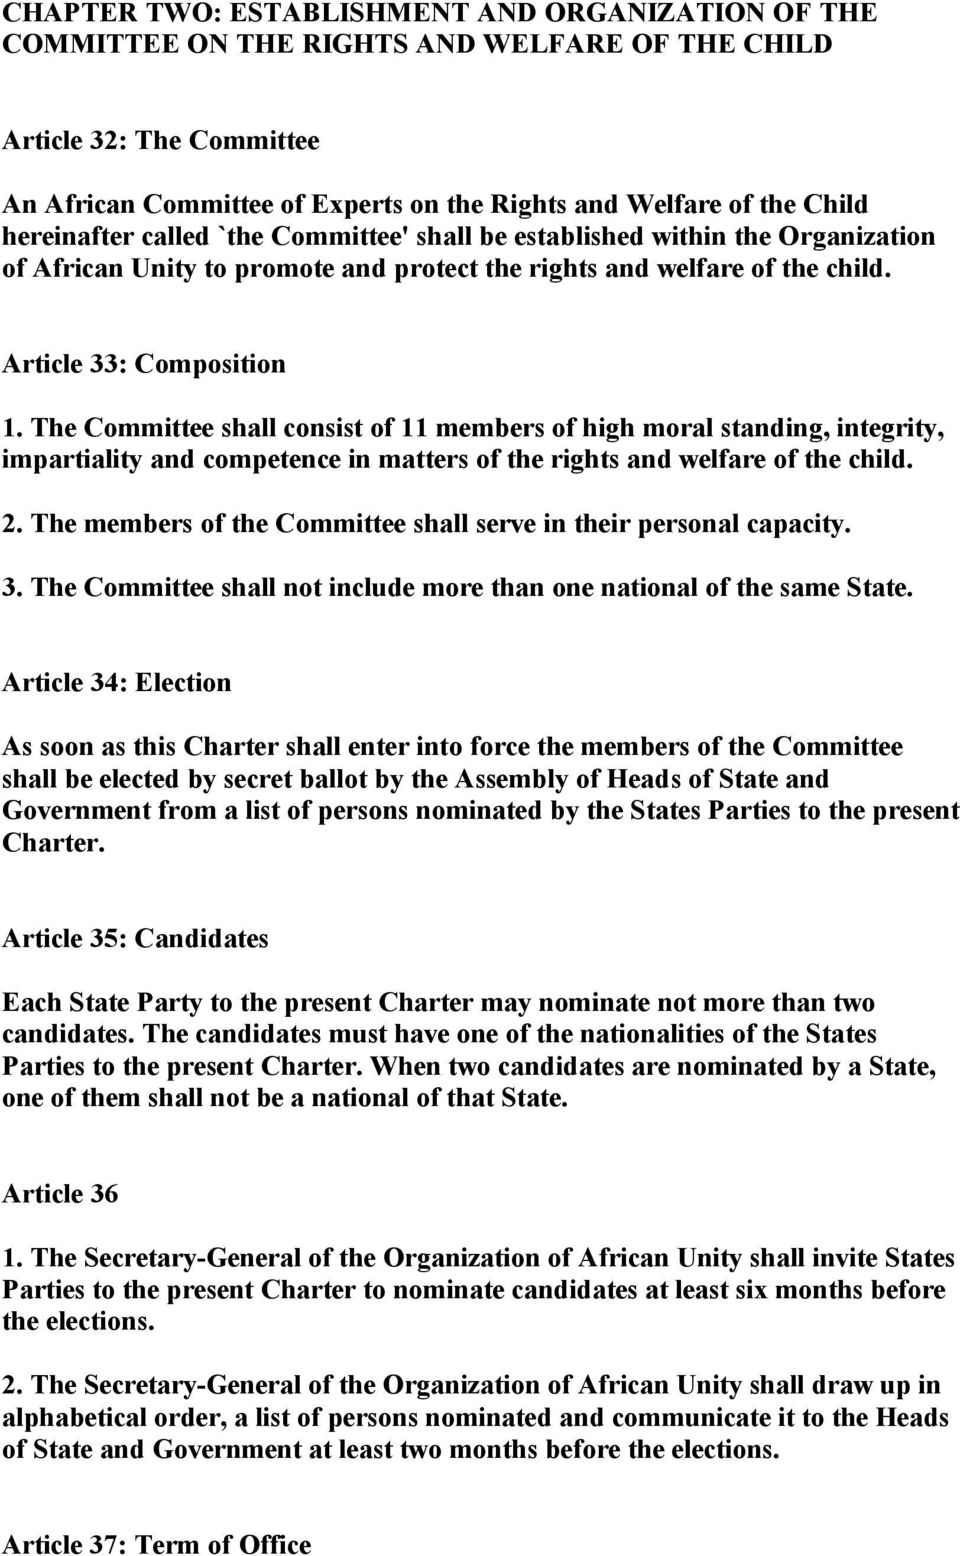 The Committee shall consist of 11 members of high moral standing, integrity, impartiality and competence in matters of the rights and welfare of the child. 2.